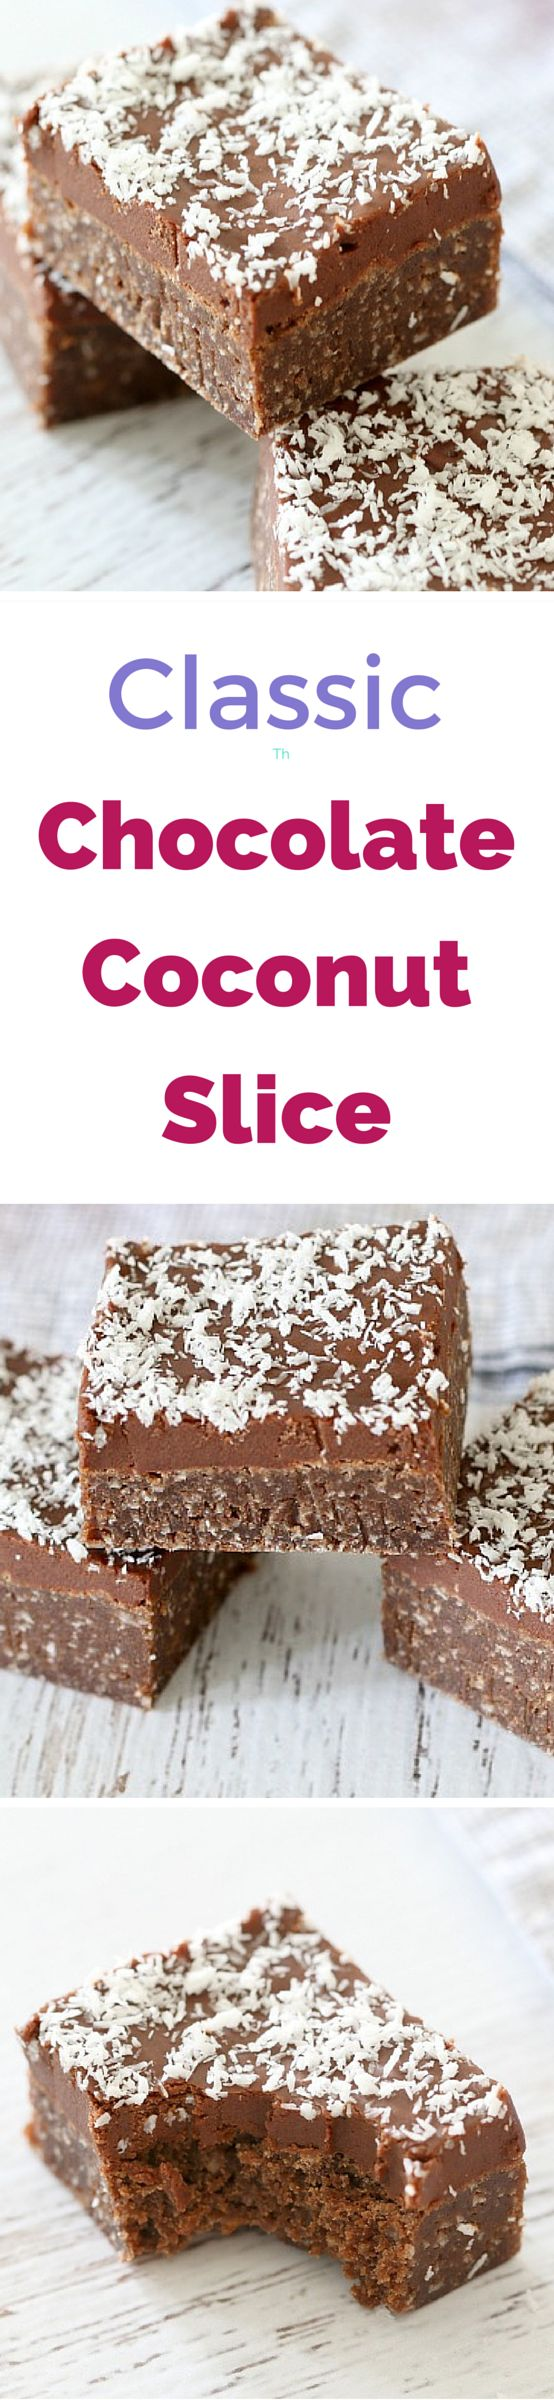 ~ This Chocolate Coconut Slice is just like your grandma used to make! Delicious two-layer bars of total yumminess! #chocolate #coconut #slice #bars ...